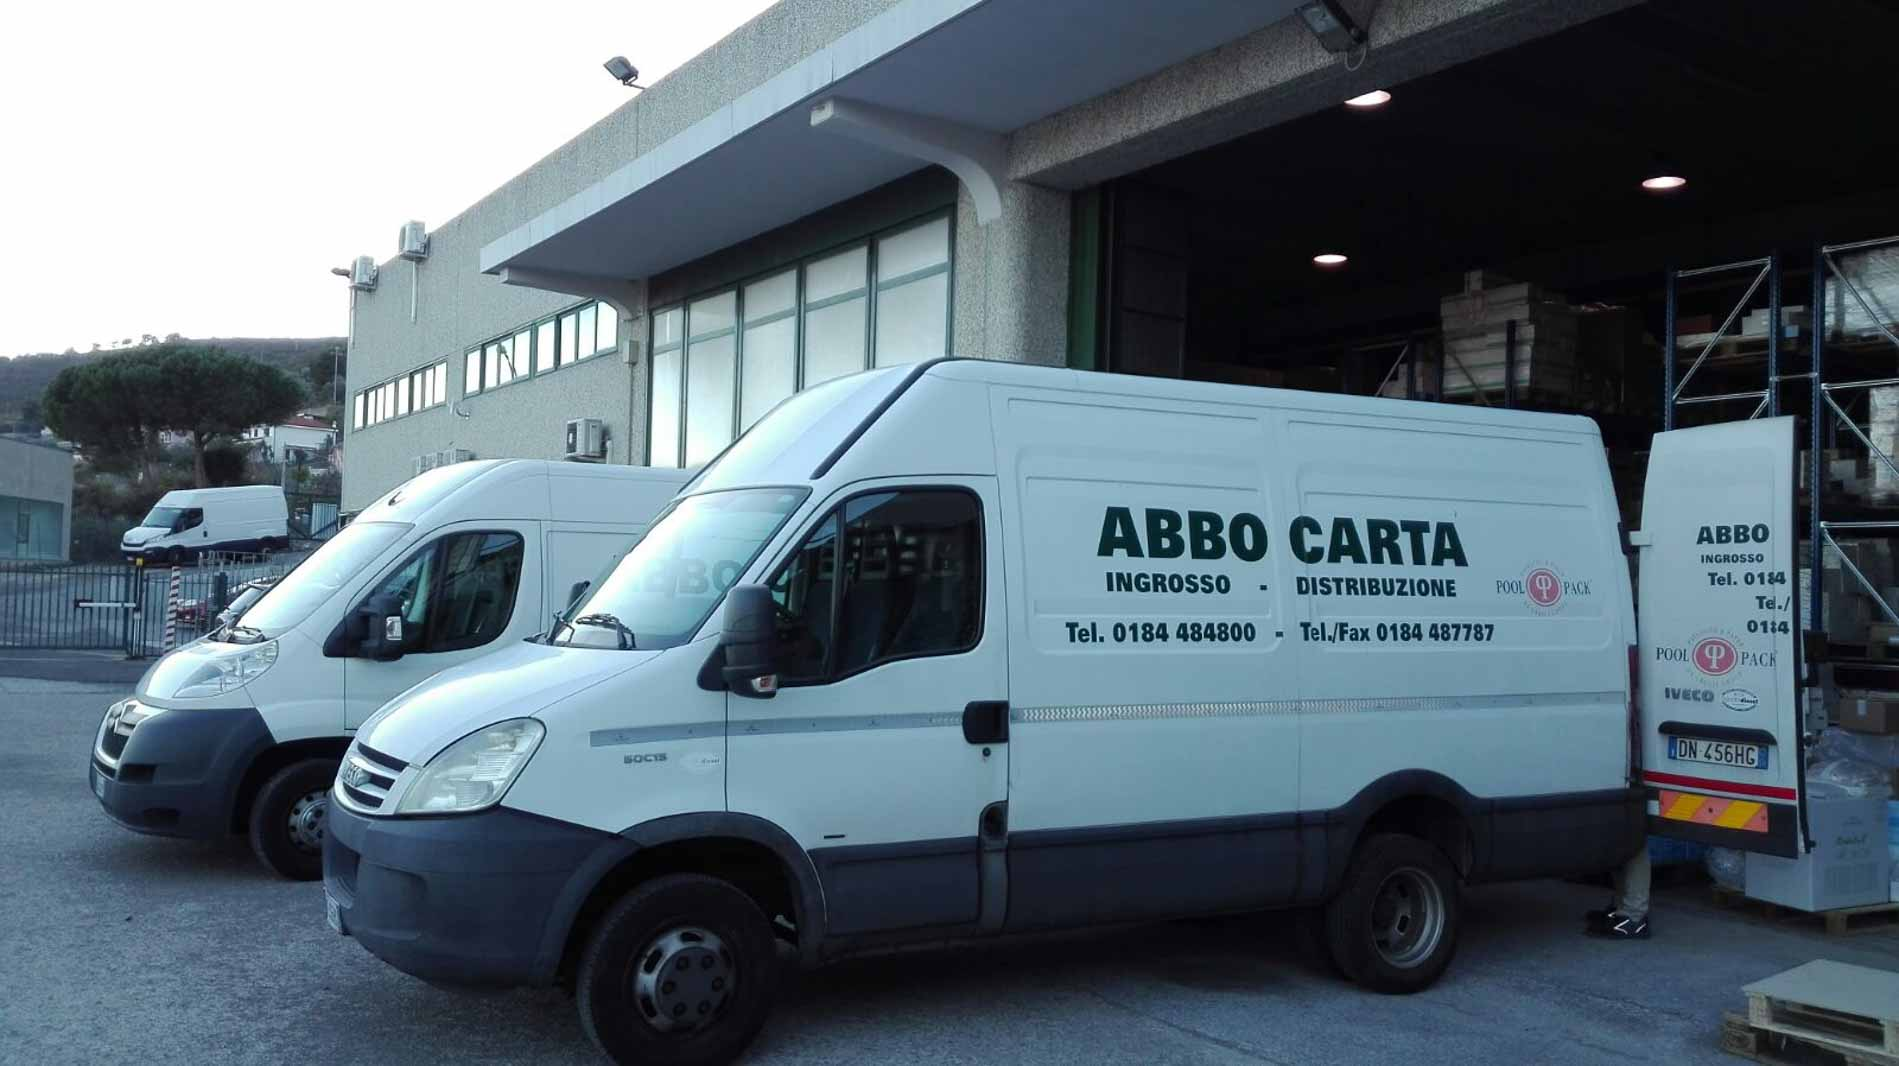 pantagroup-packaging-abbo-carta-1